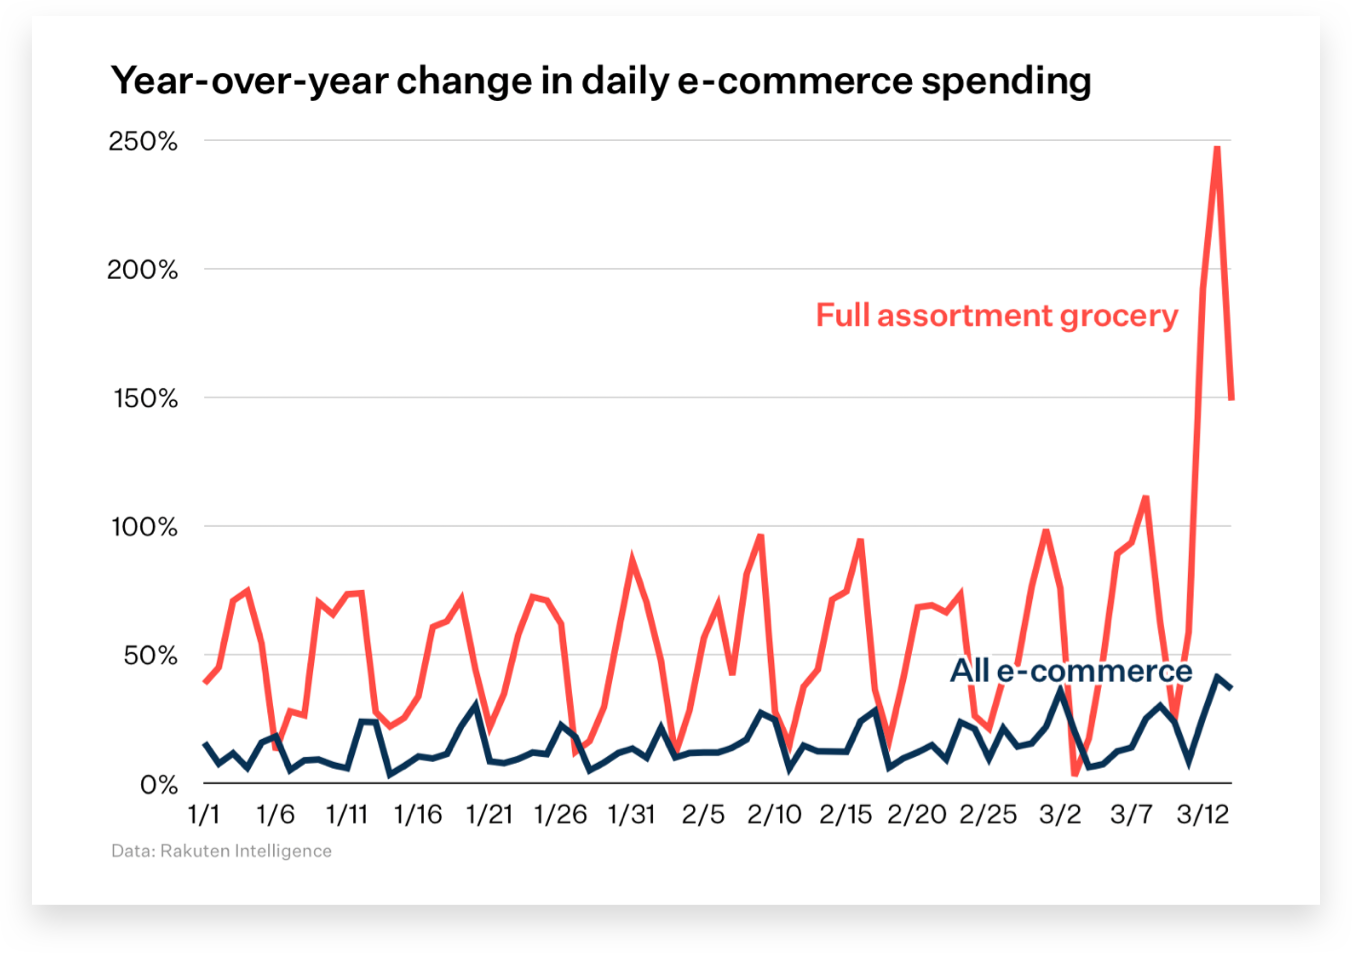 Year-over-year change in daily e-commerce spending